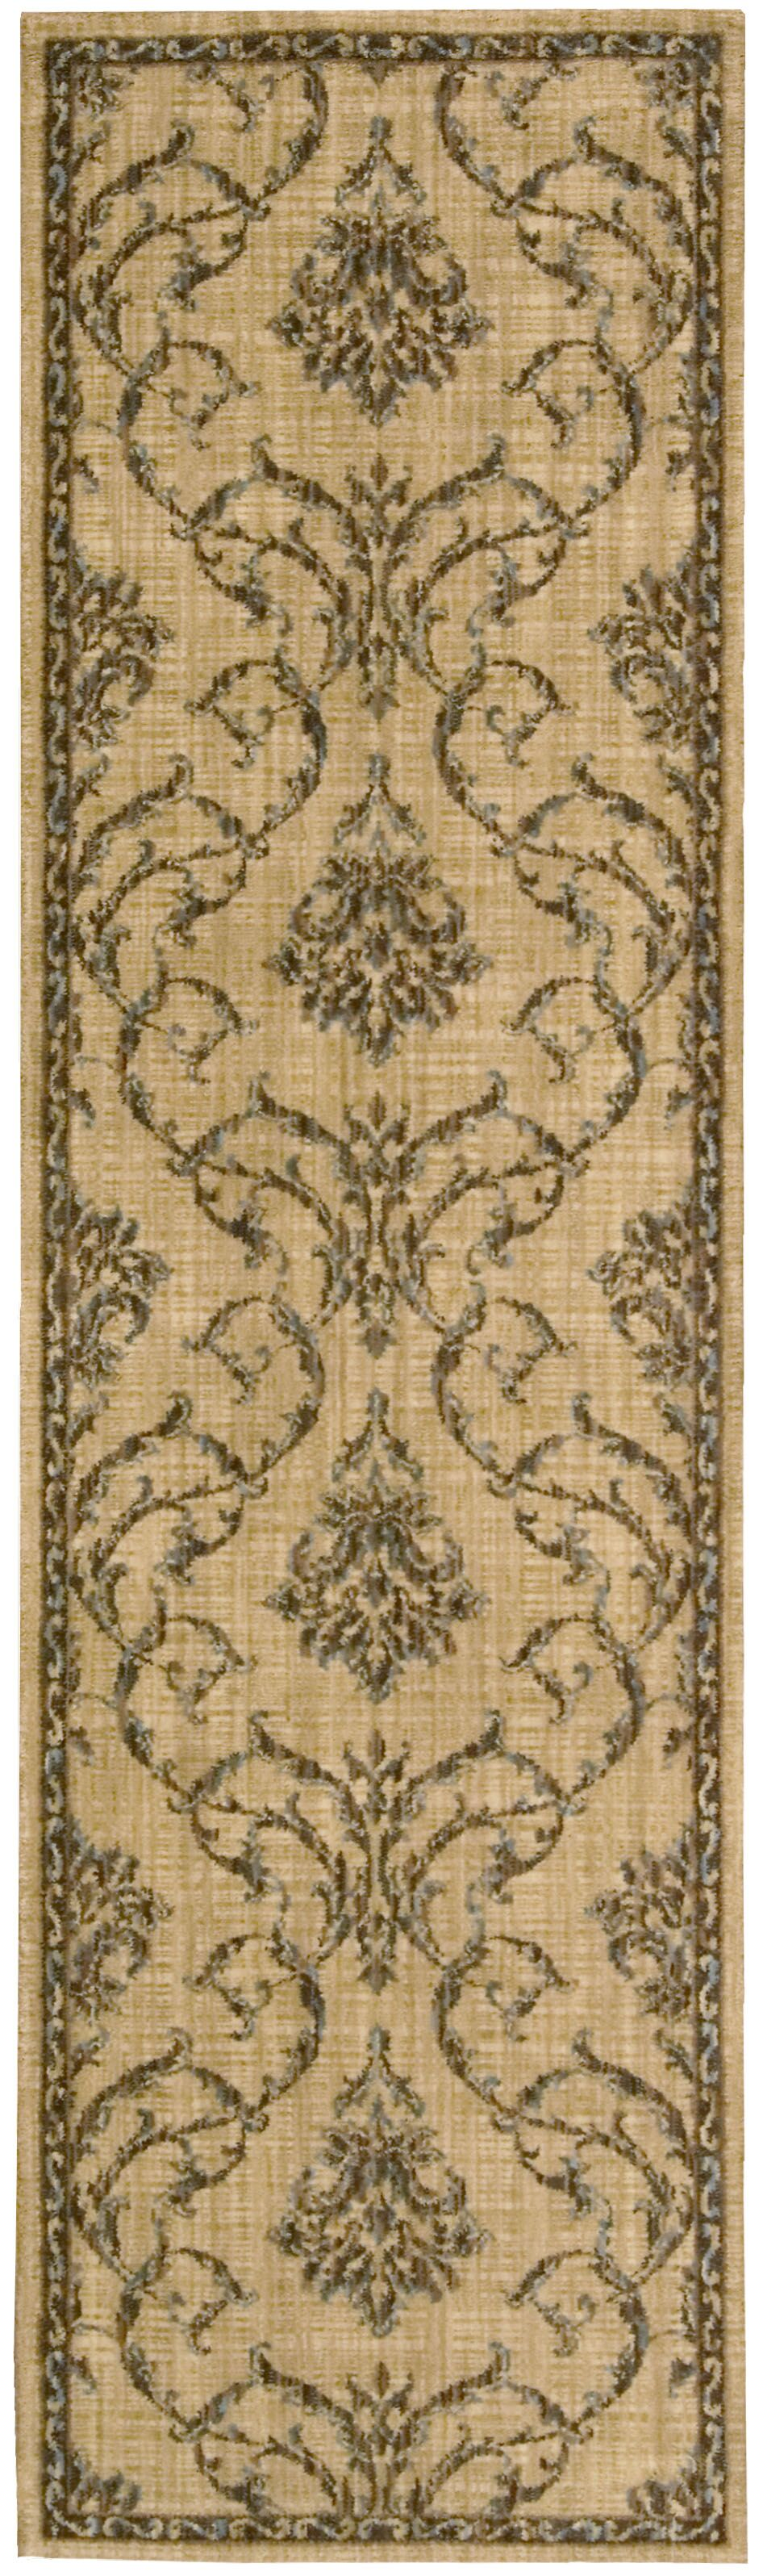 Paige Hand-Woven Beige Area Rug Rug Size: Runner 2'3